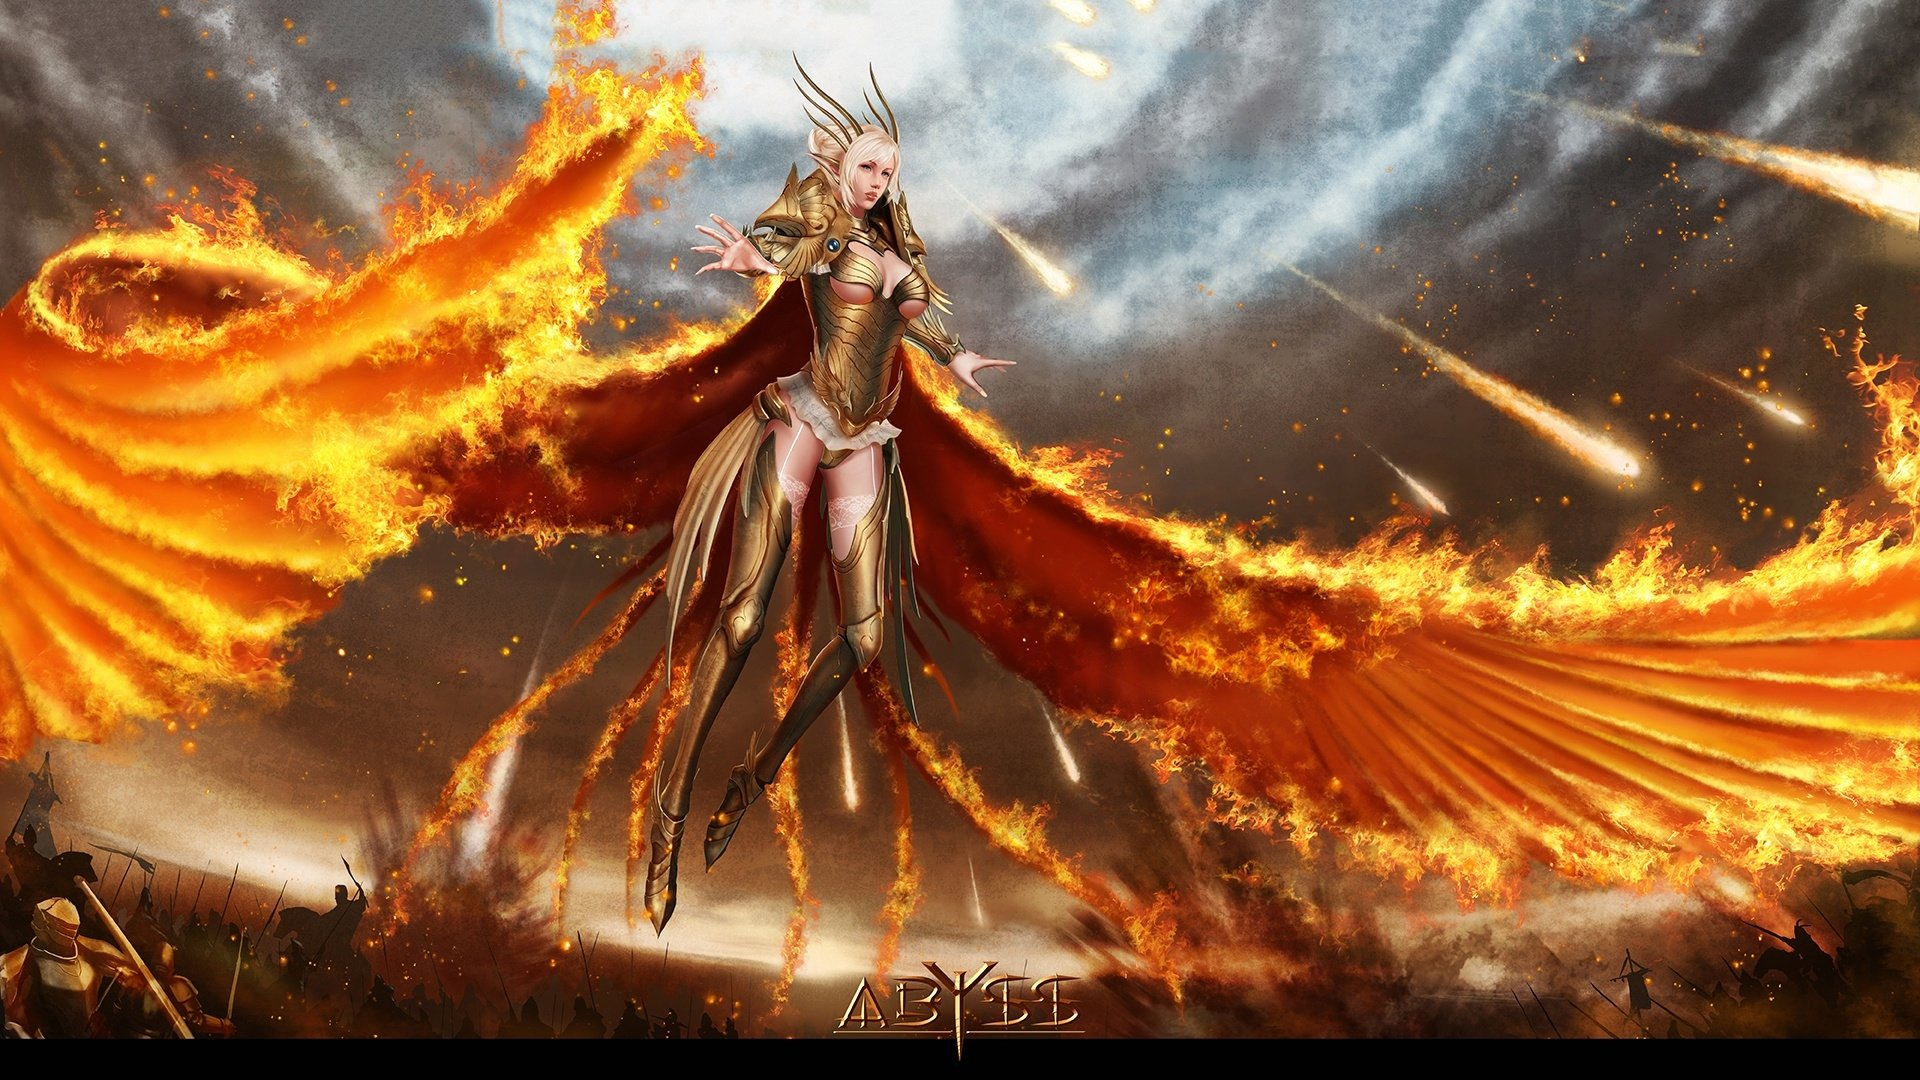 Wings Of Fire Wallpaper Download Full